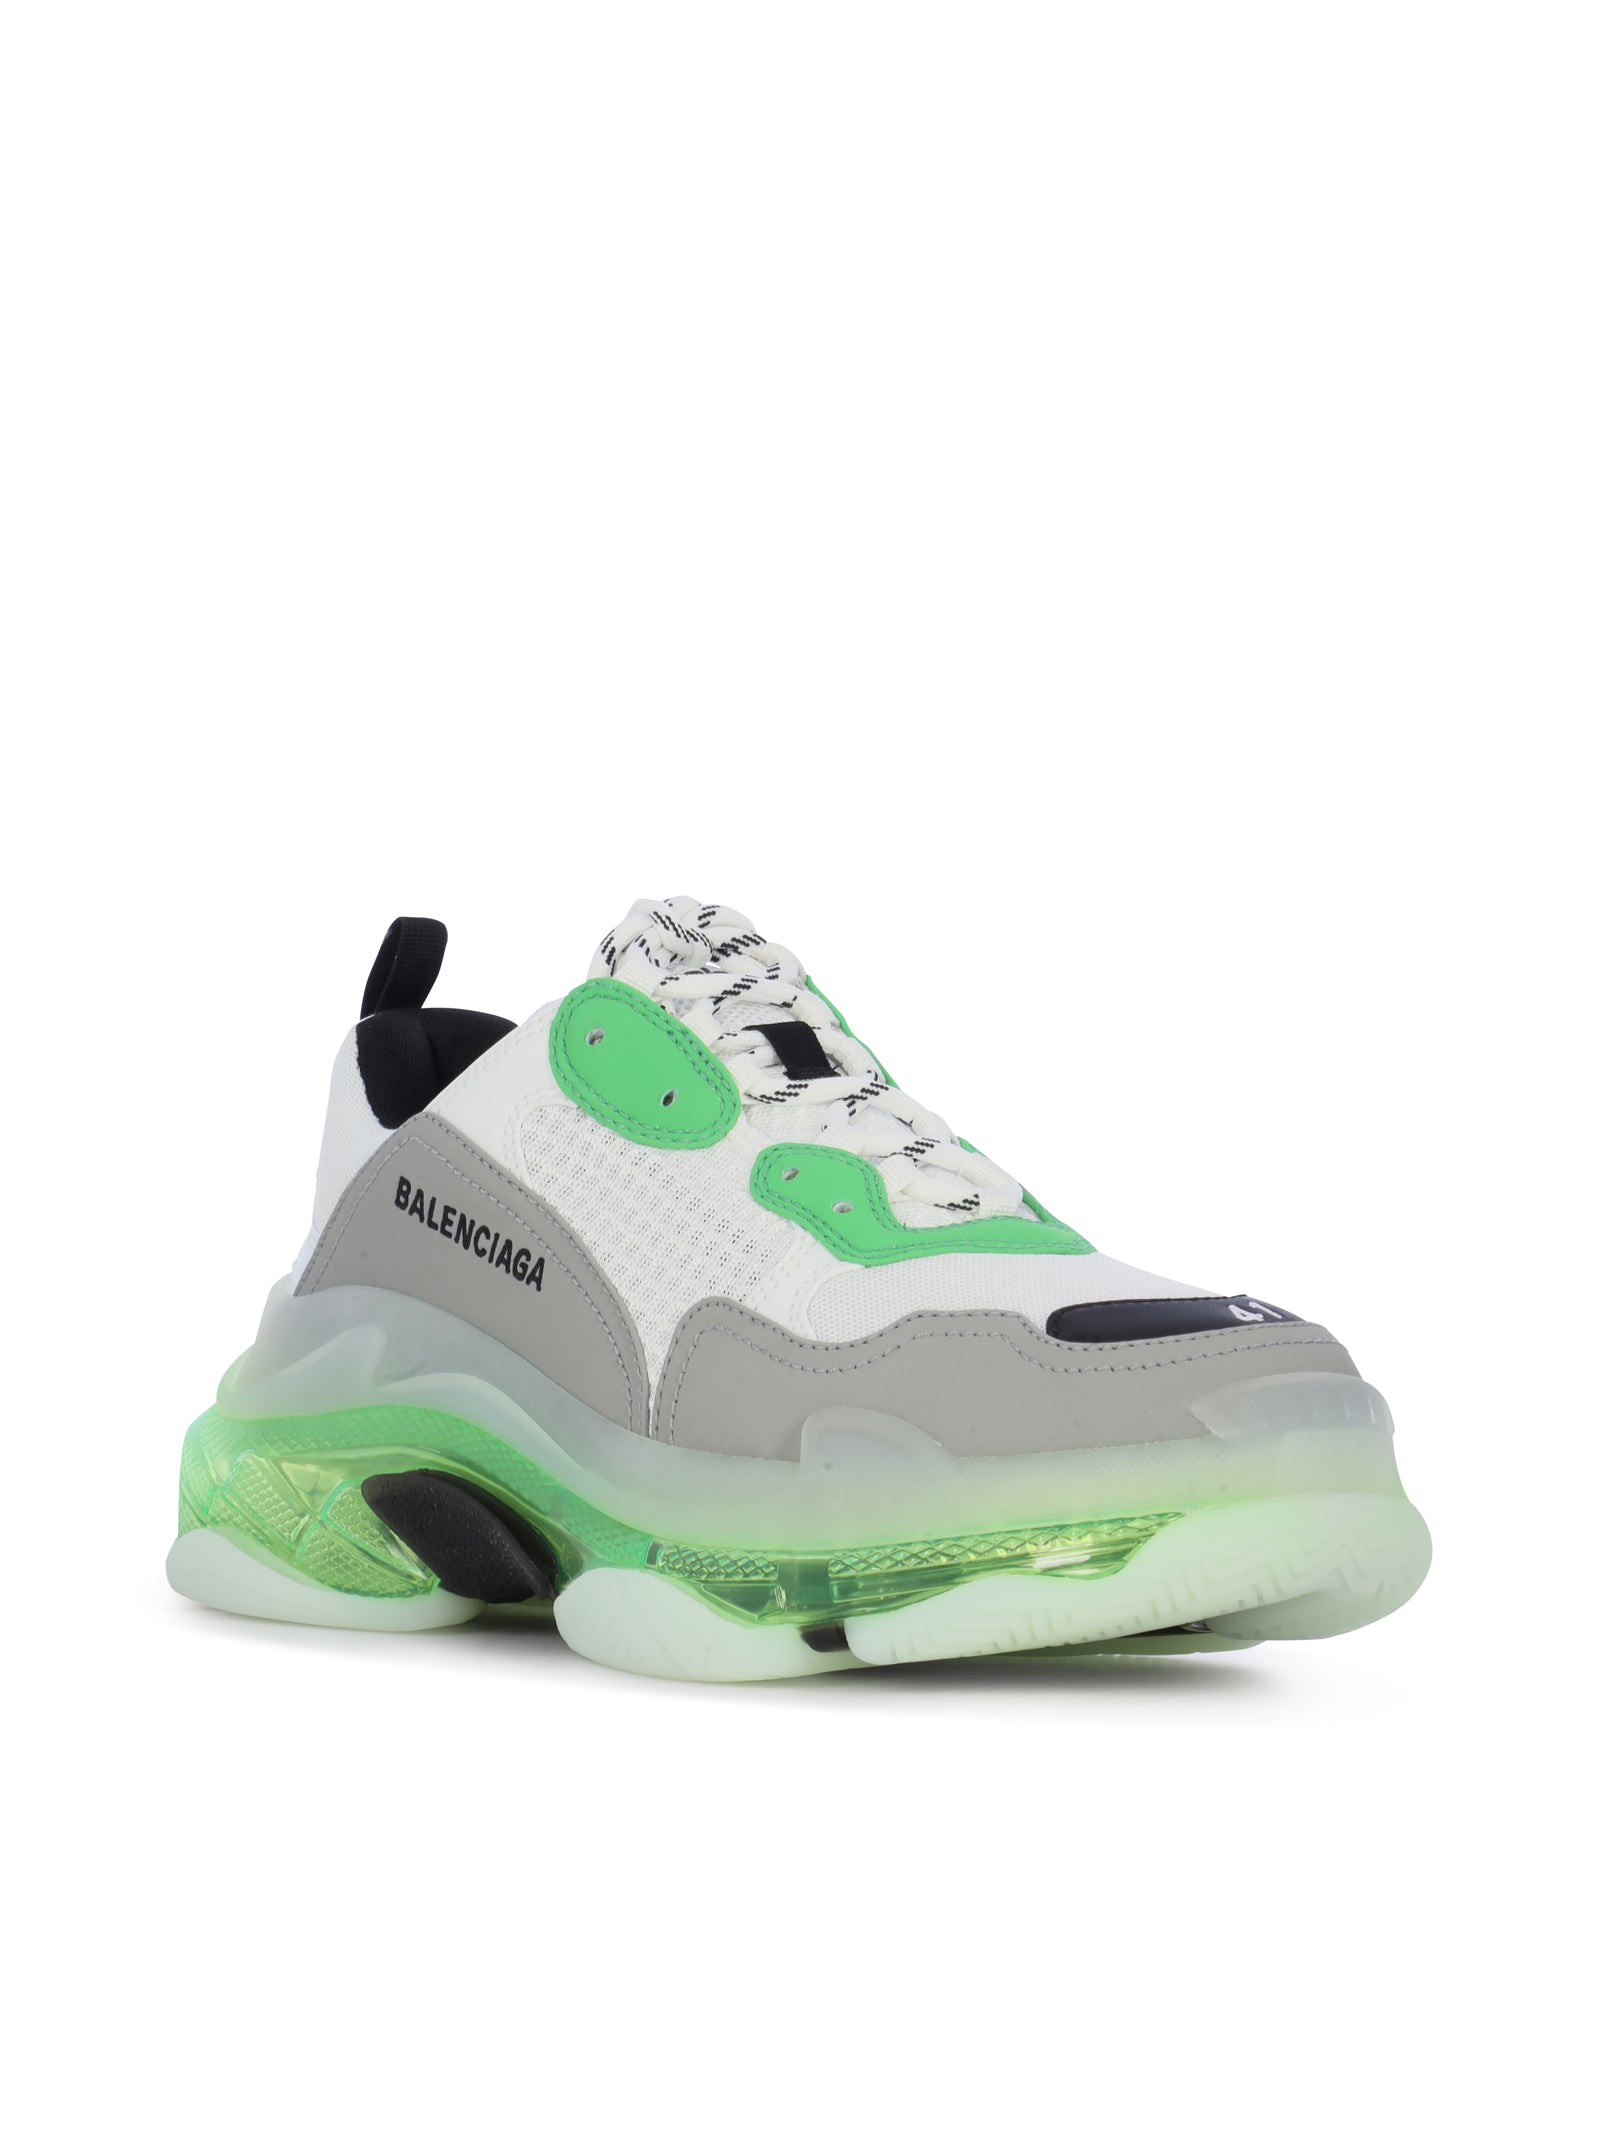 Oversized sneakers in mix of materials with air bubble in the sole